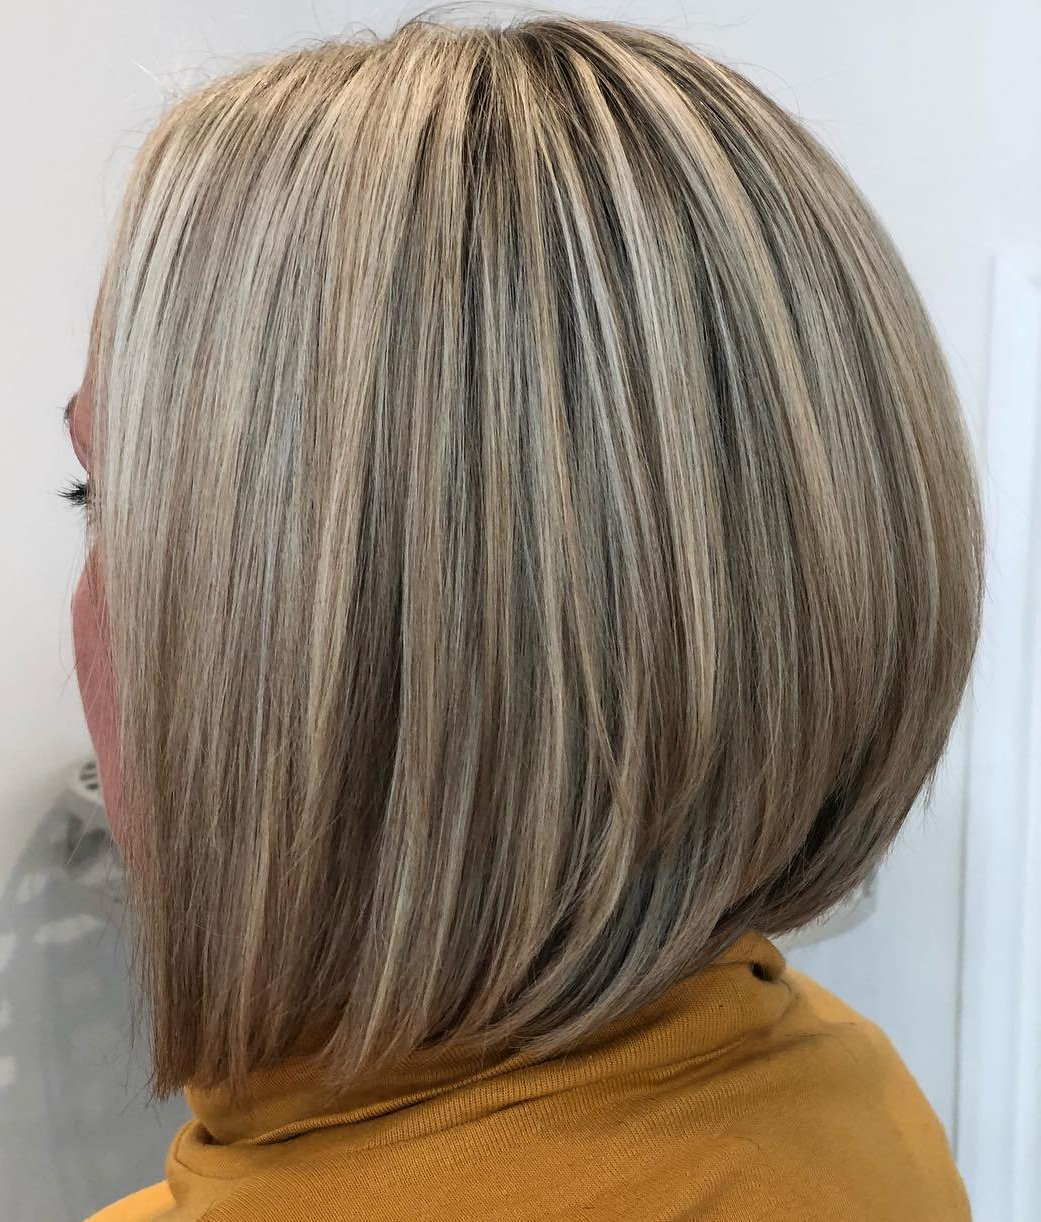 Find Your Best Bob Haircut For 2020 Intended For 2018 Rounded Sleek Bob Hairstyles With Minimal Layers (Gallery 10 of 20)